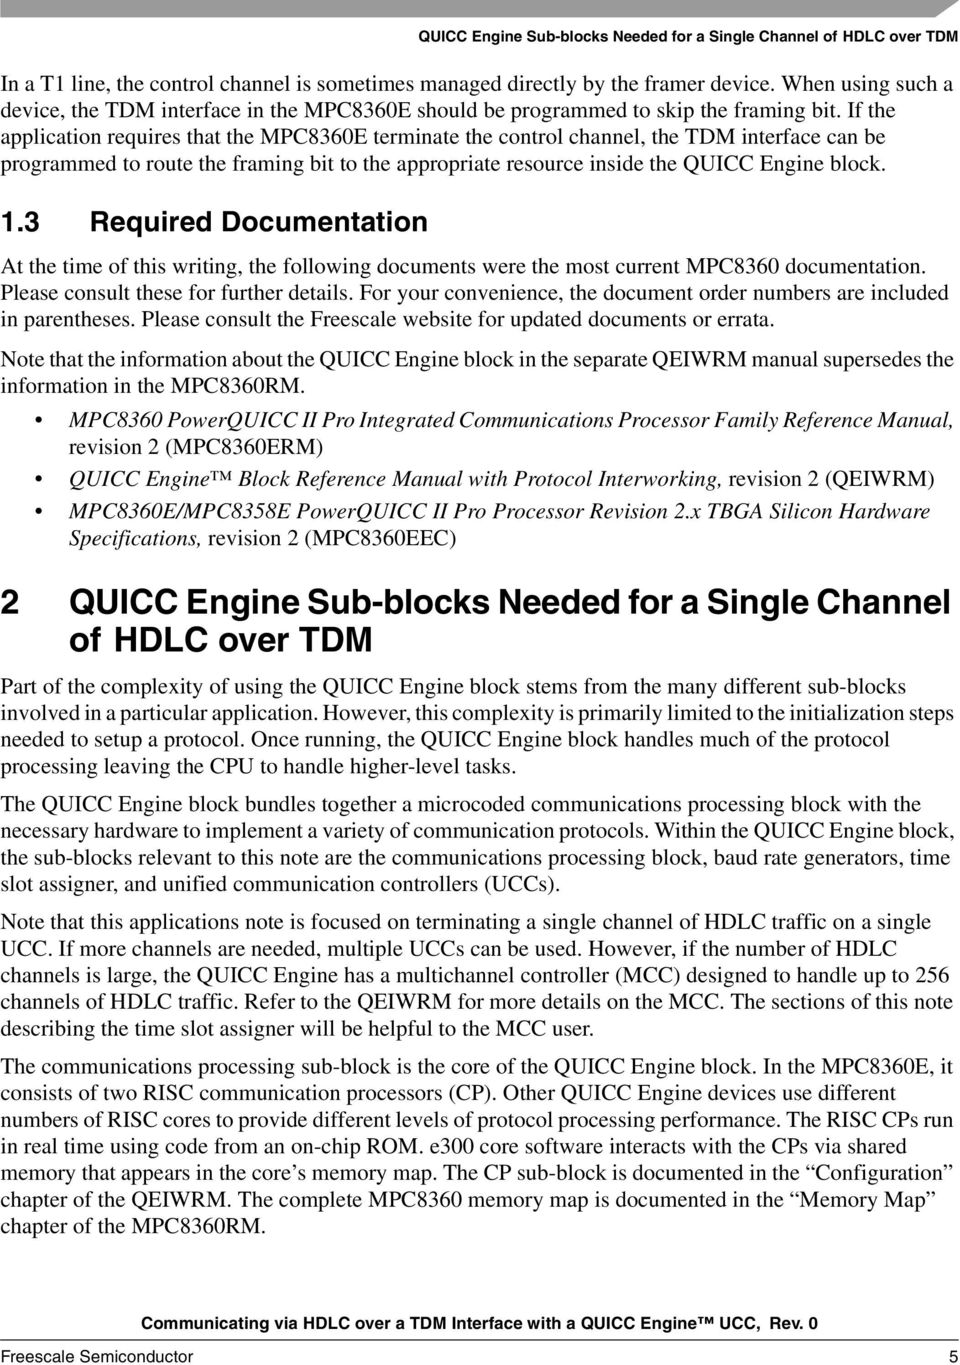 If the application requires that the MPC8360E terminate the control channel, the TDM interface can be programmed to route the framing bit to the appropriate resource inside the QUICC Engine block. 1.